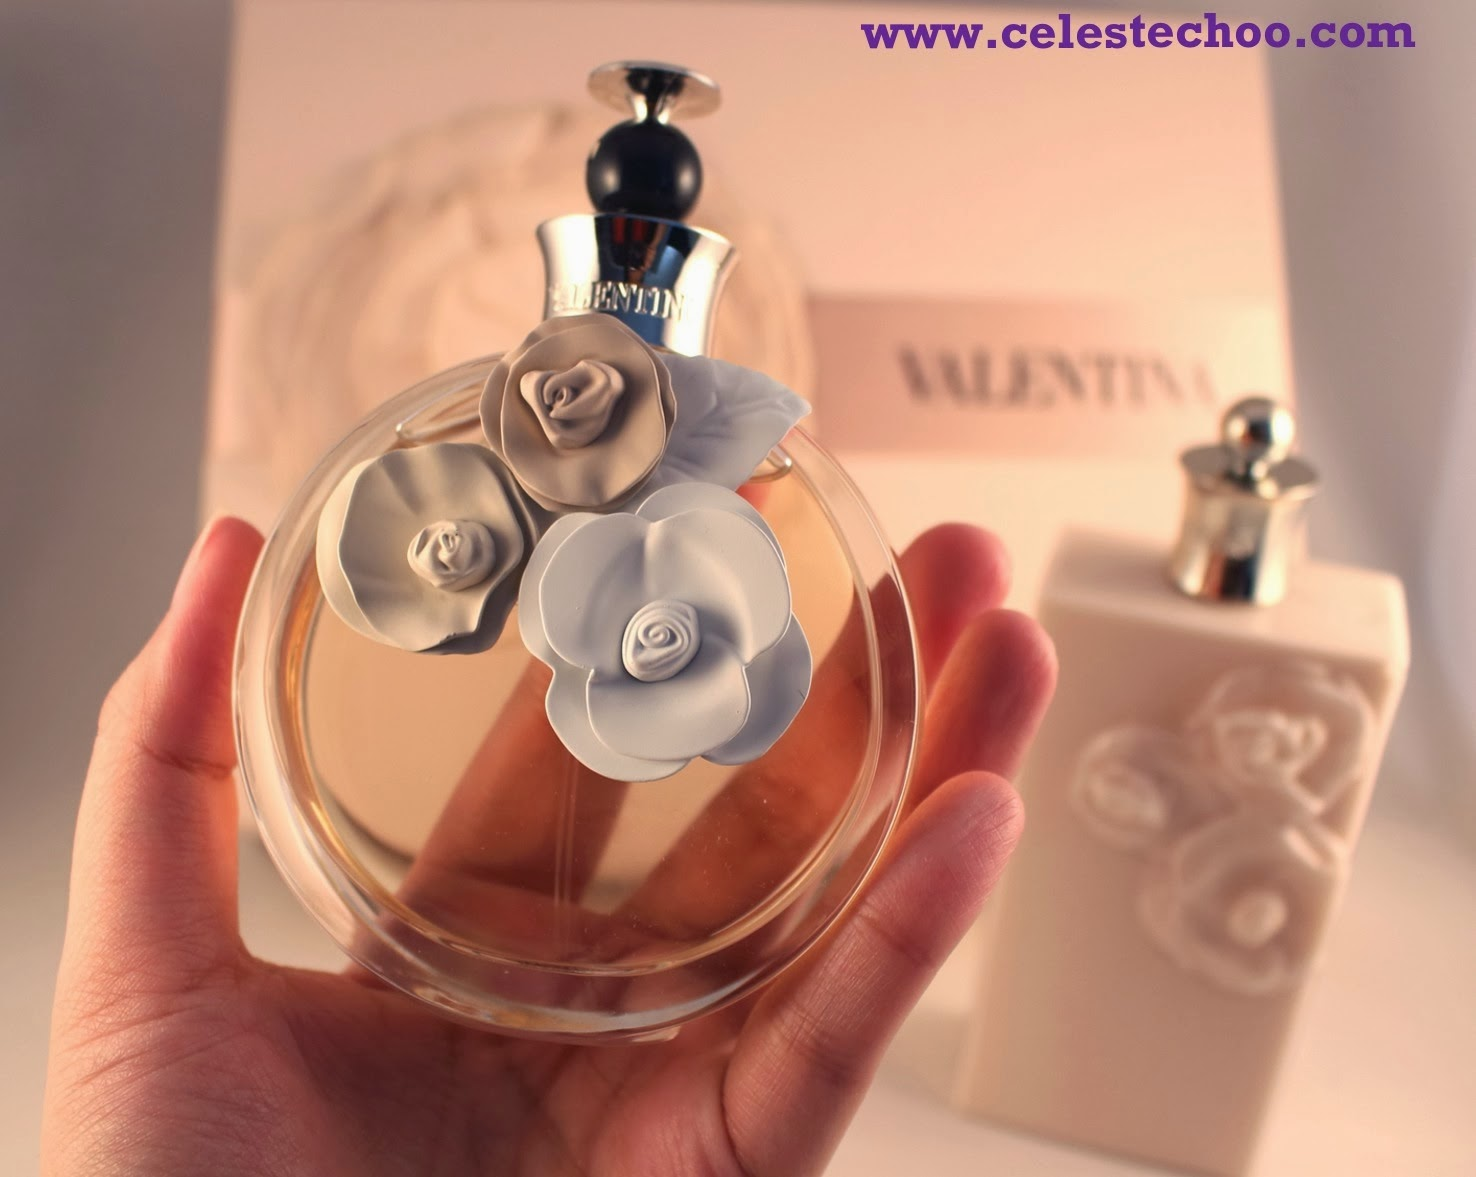 top-fragrance-valentina-perfume-bottle